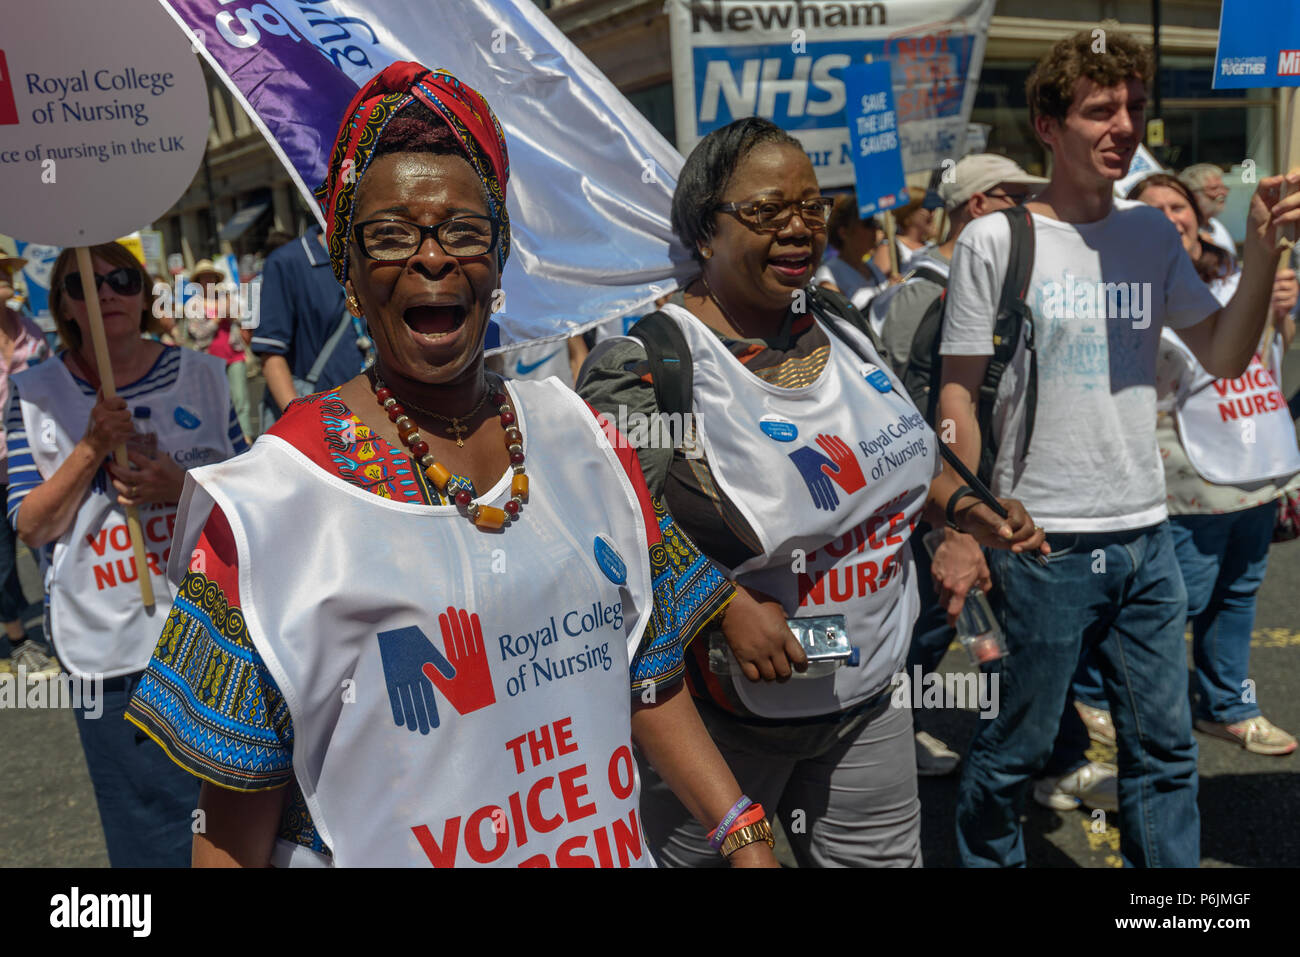 June 30, 2018 - London, UK. 30th June 2018. Royal College of Nursing (RCN) President Cecilia Anim (left) with other nurses on the march through London from the BBC to a rally near Downing St to celebrate 70 years of the NHS, and to support its dedicated workers in demanding a publicly owned NHS that is free for all with proper funding and proper staffing and providing a world class services for every community. The protest, organised by the the People's Assembly, Health Campaigns Together, Trades Union Congress, Unison, Unite, GMB, British Medical Association, Royal College of Nursing, Royal - Stock Image